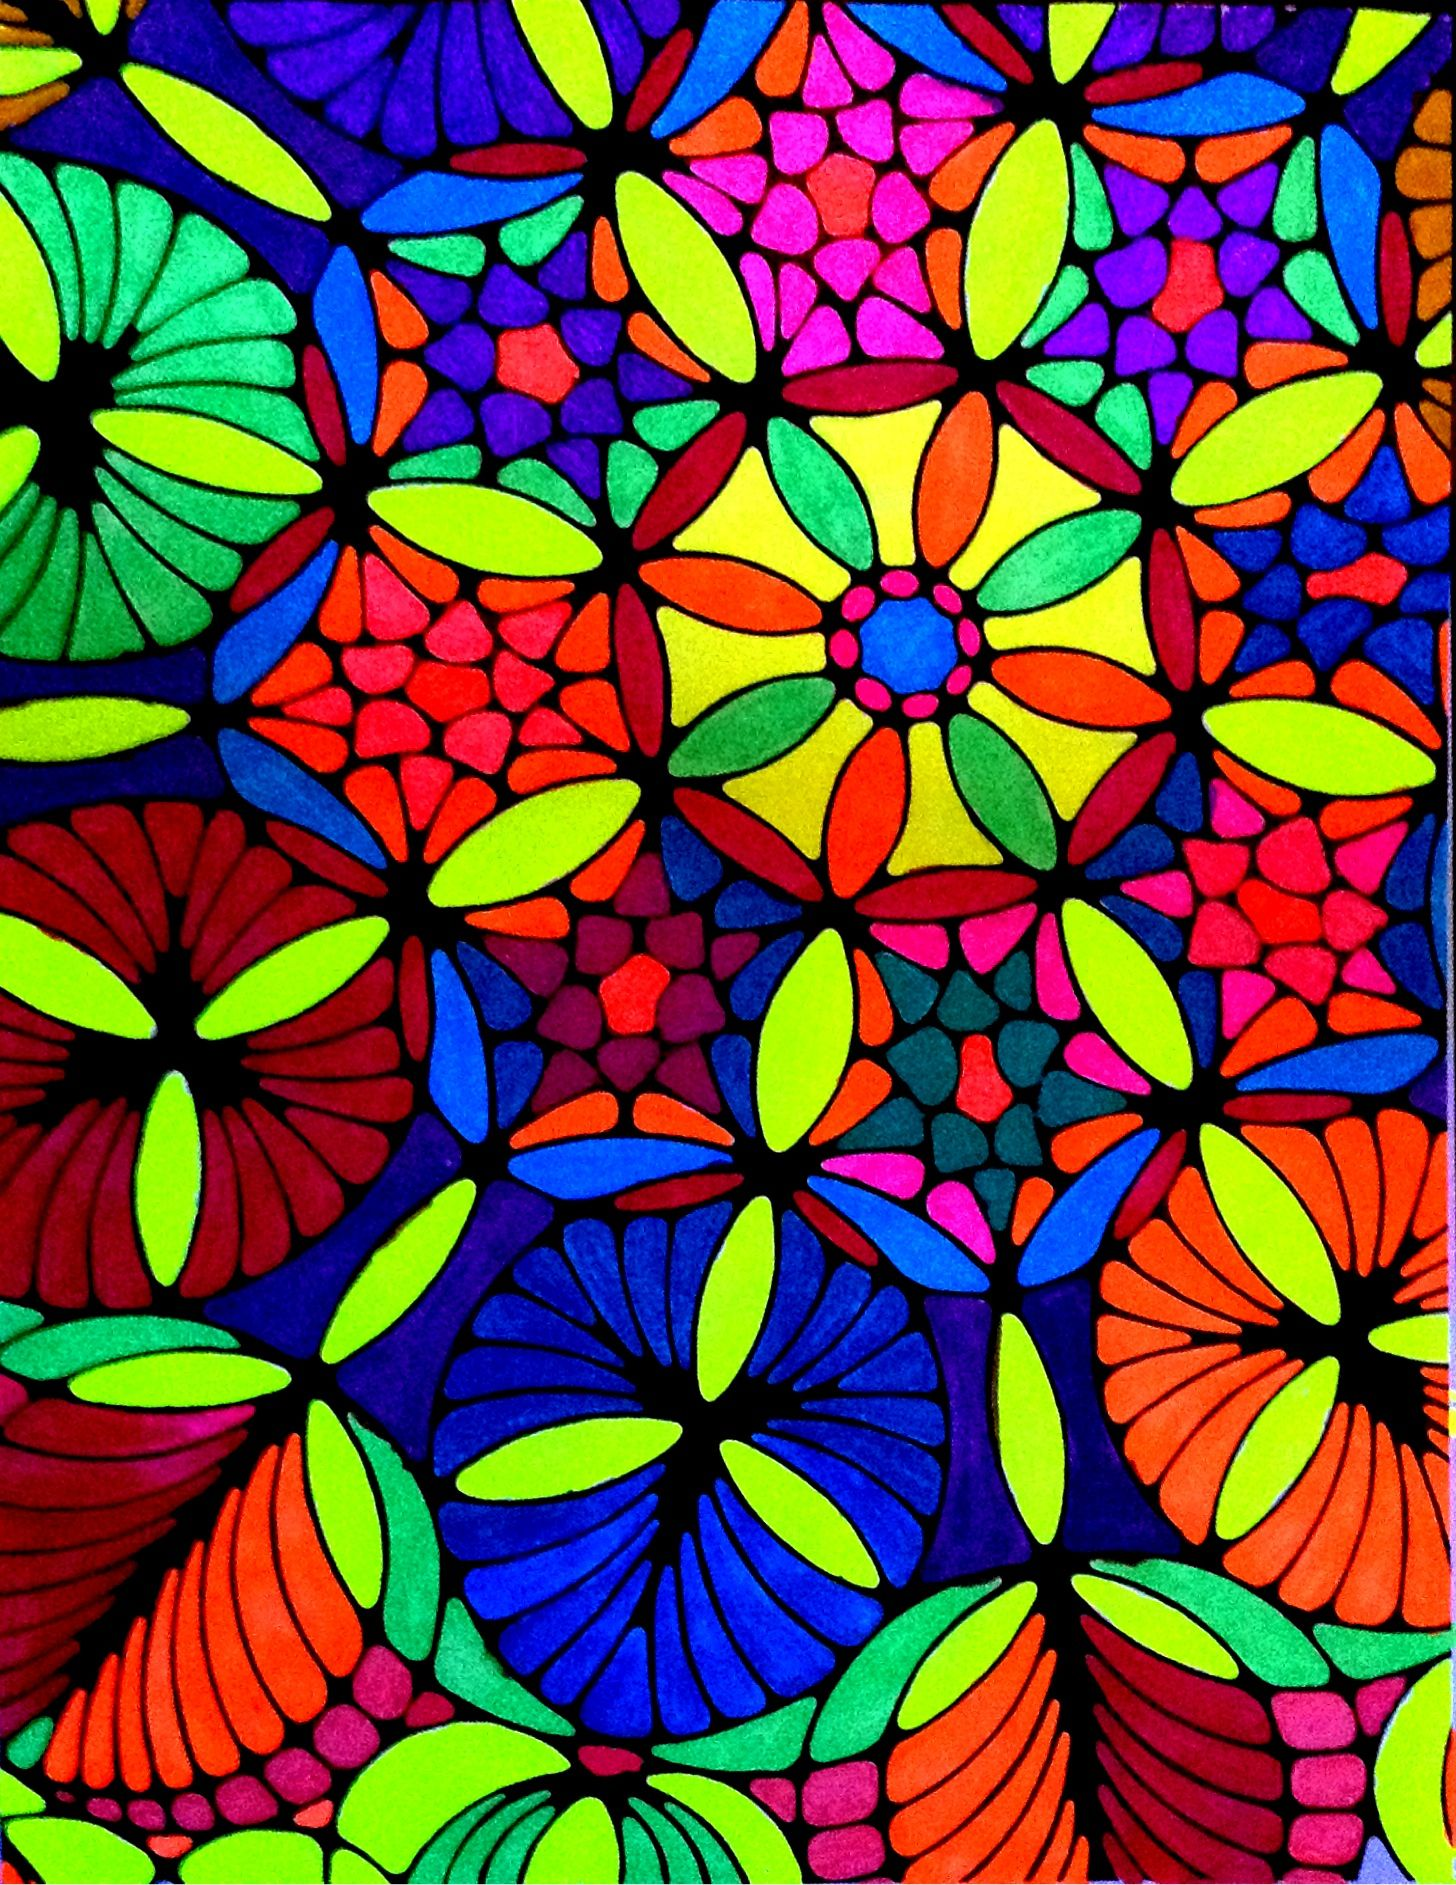 Pin by Robin Taylor on Kaleidoscopia Coloring Books | Pinterest ...